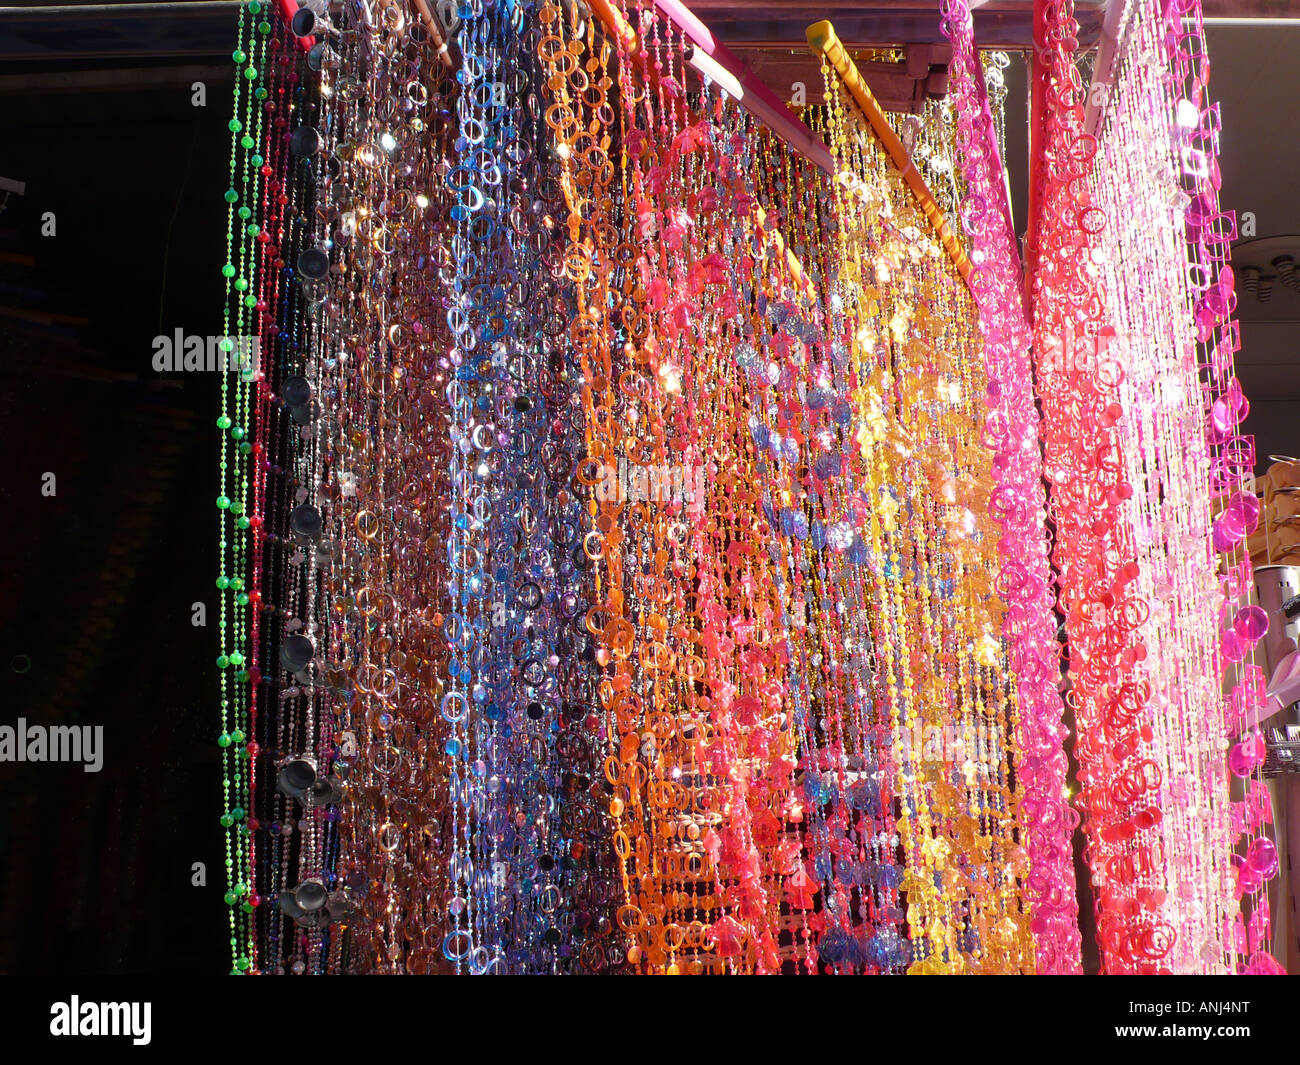 Beaded door curtains argos - Beaded Door Curtains For Sale Selection Of Coloured Beaded Door Curtains At Shop In Istanbul